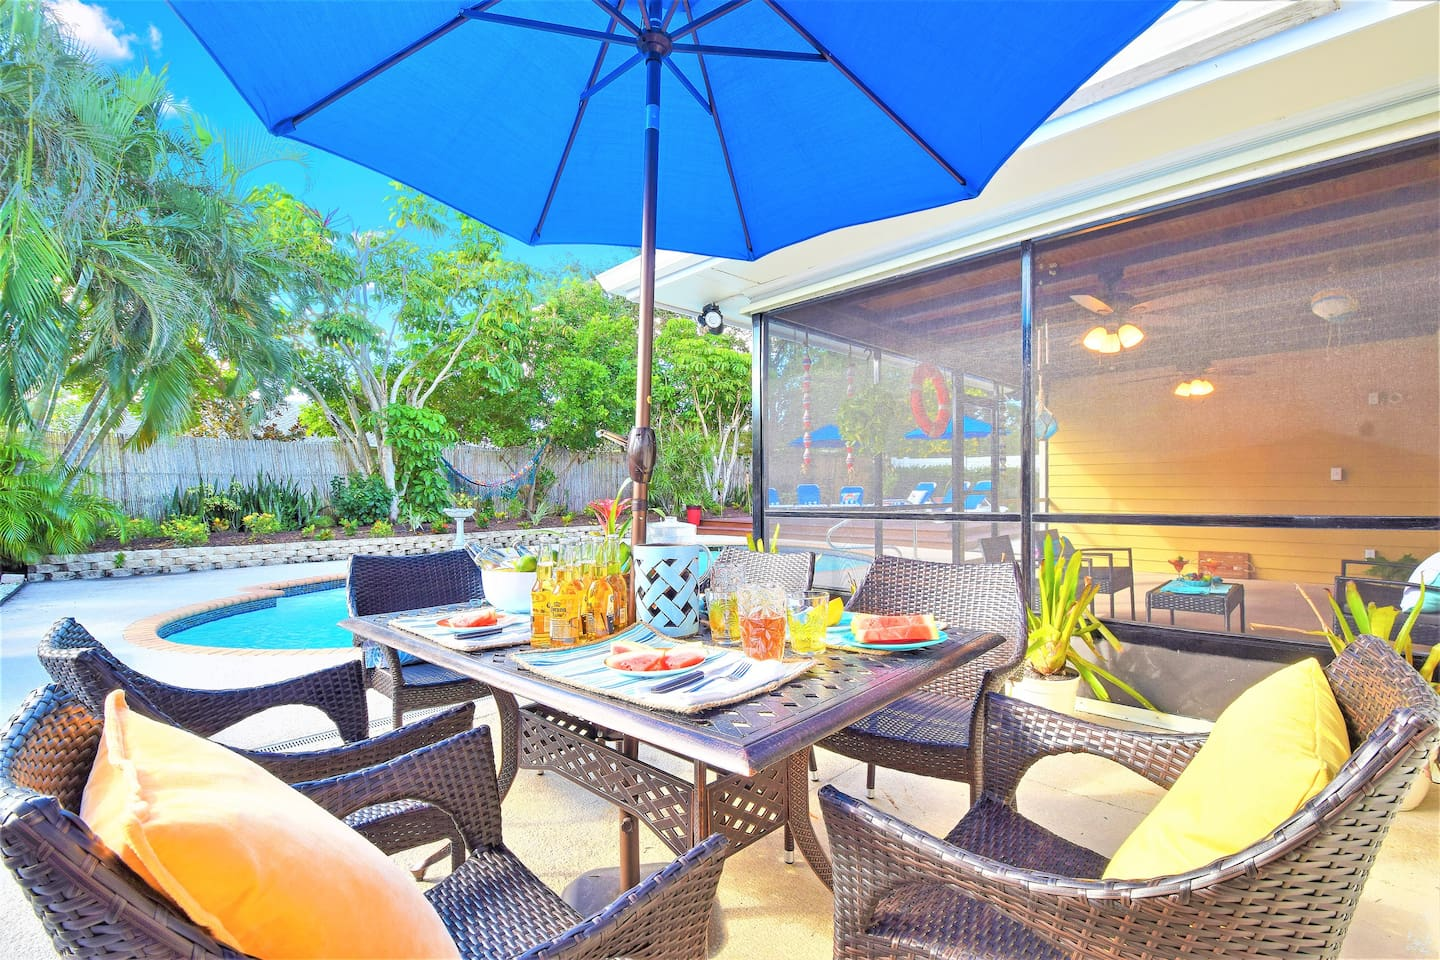 Villa Paradiso near PGA Blvd with a large pool - Villas for Rent in ...